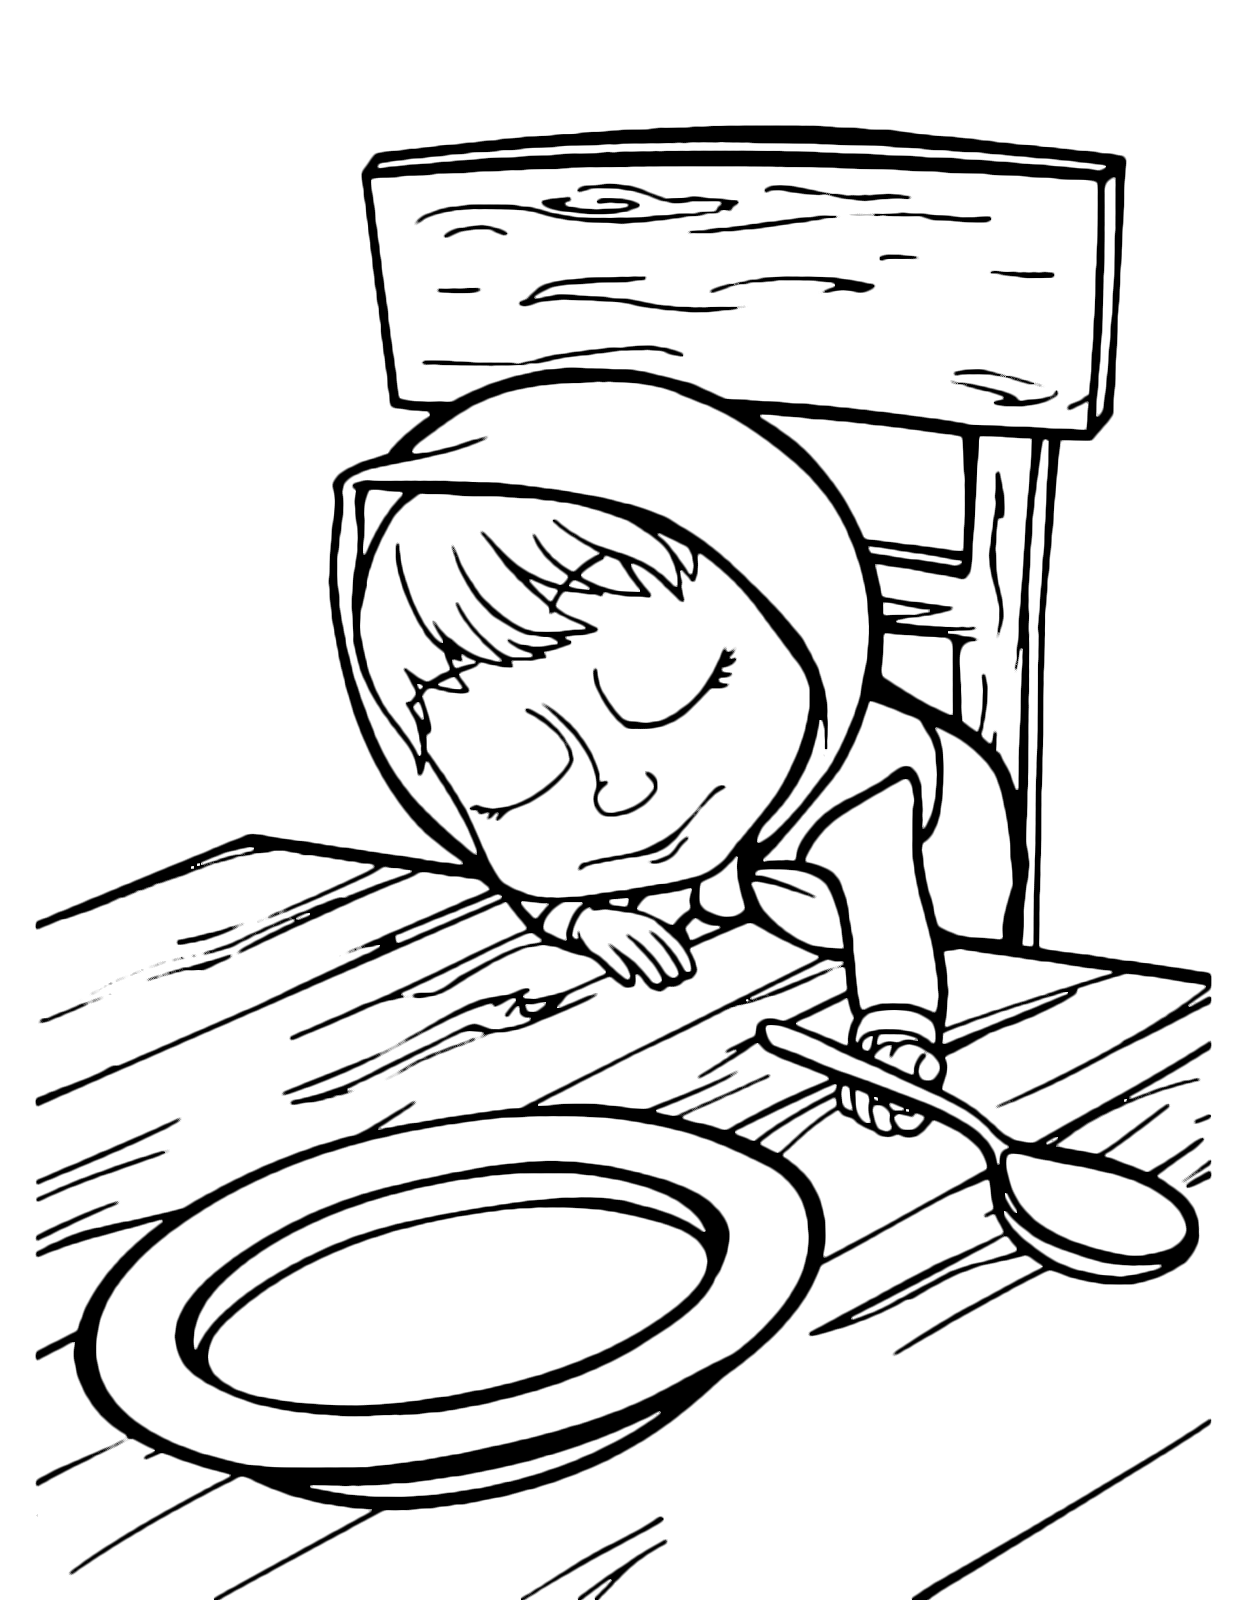 Masha Is Sleeping In Front Of The Empty Dish